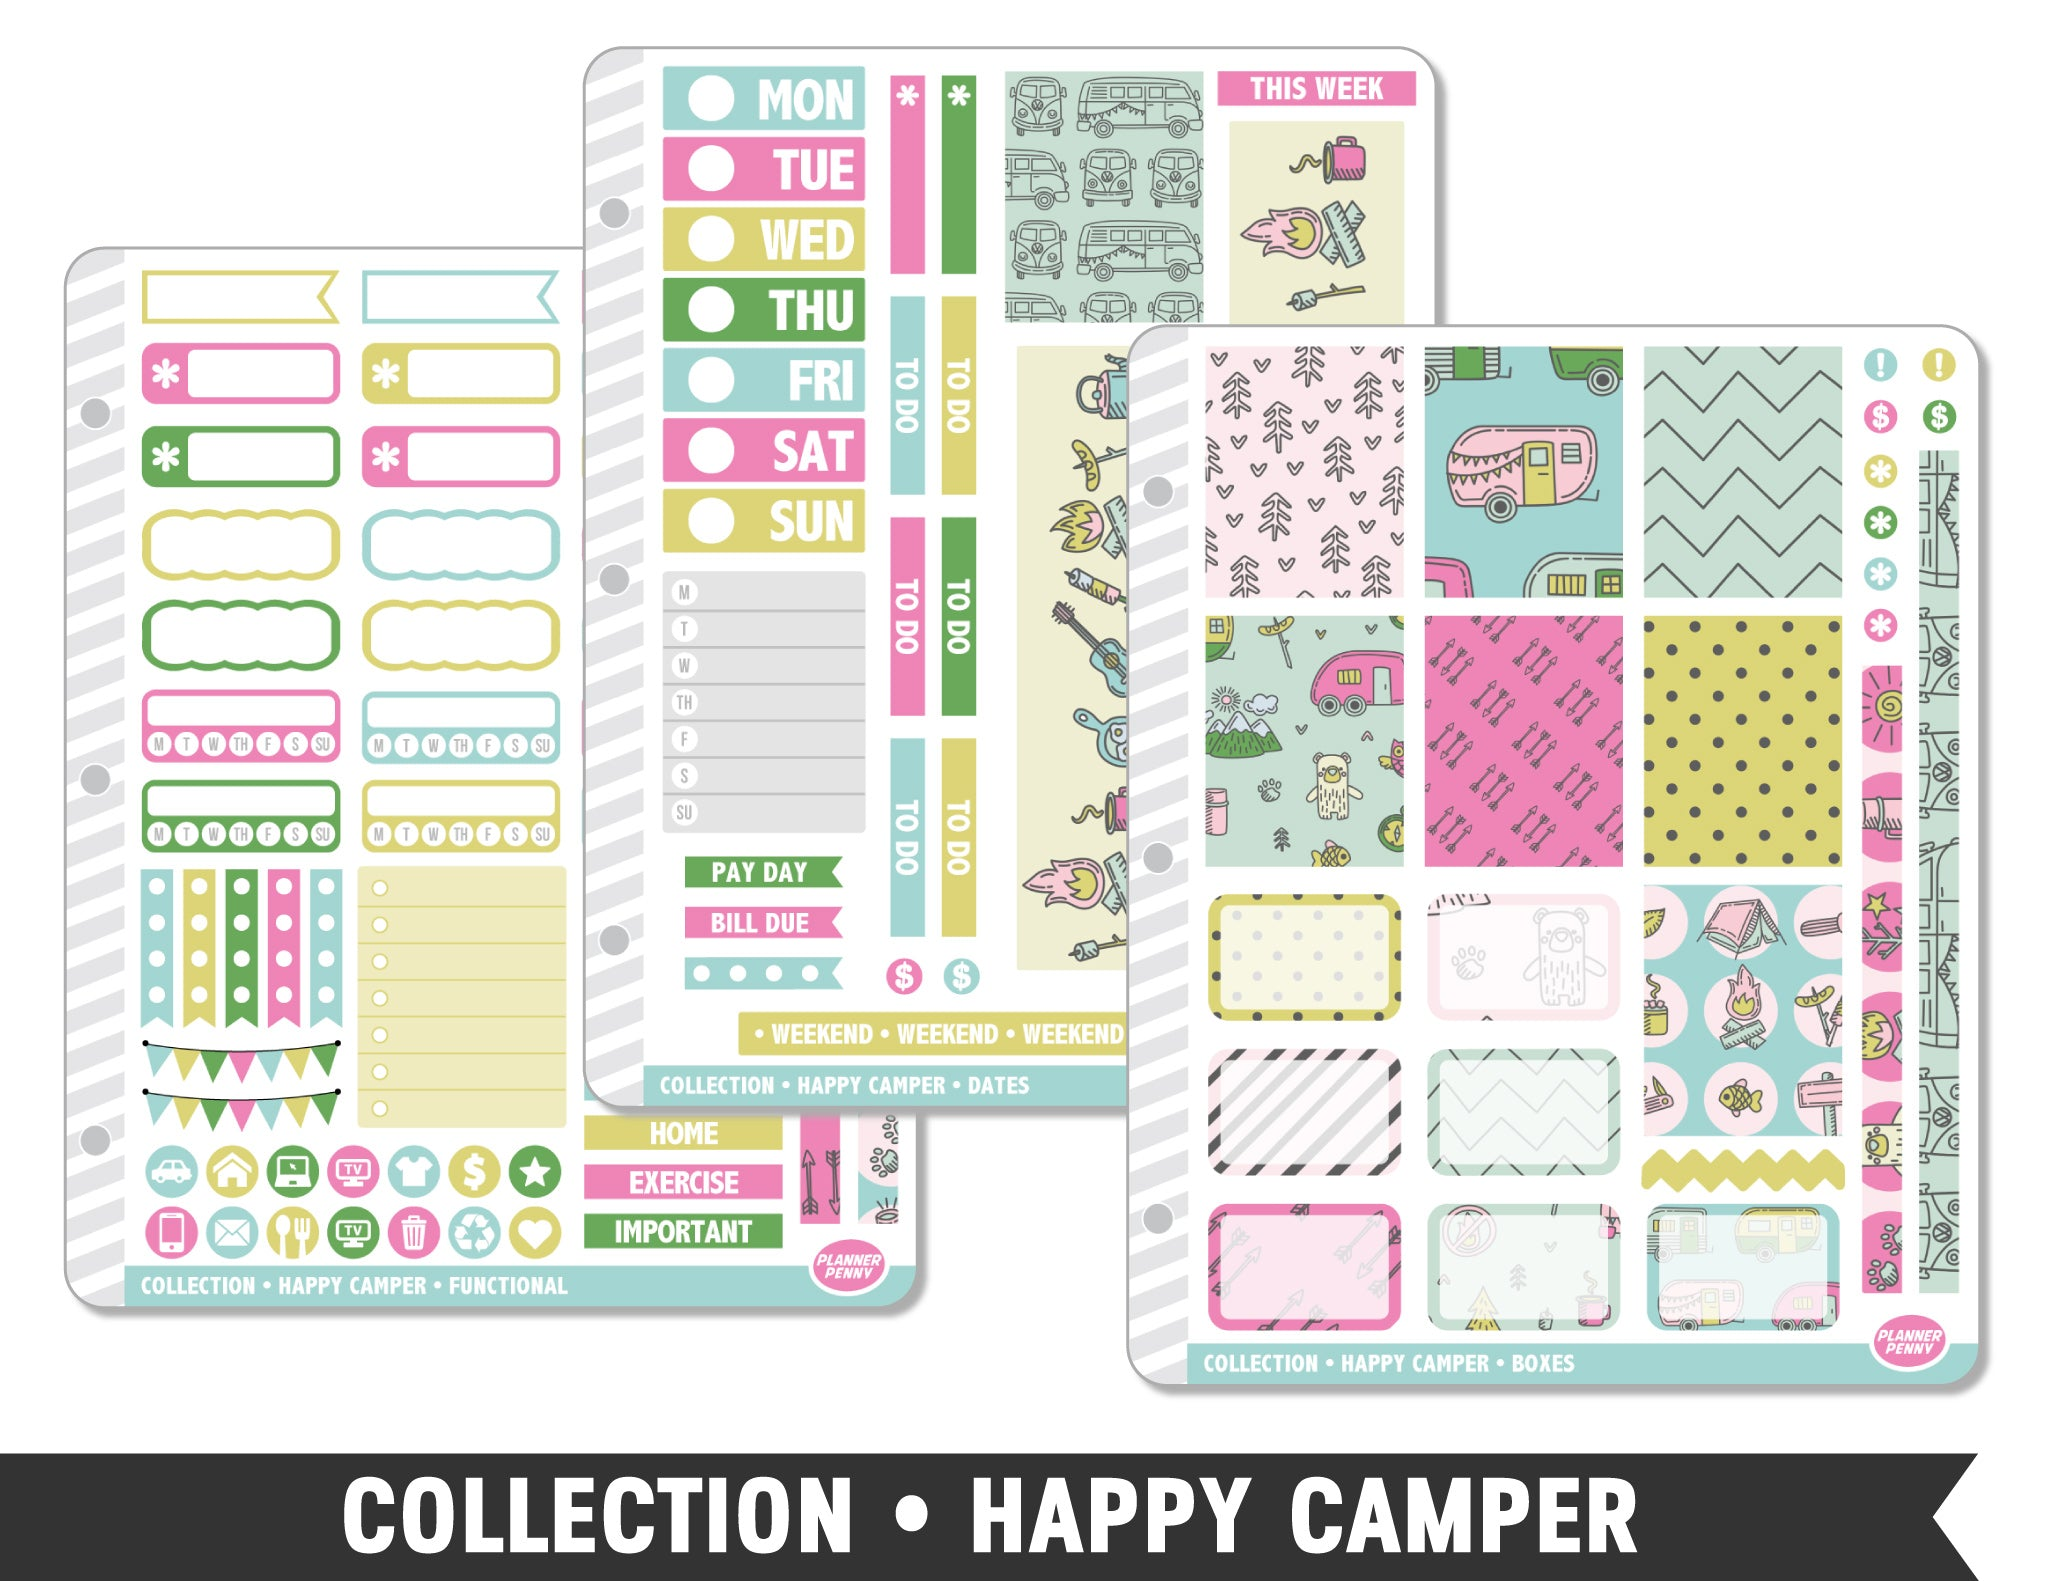 Collection • Happy Camper Planner Stickers - Planner Penny